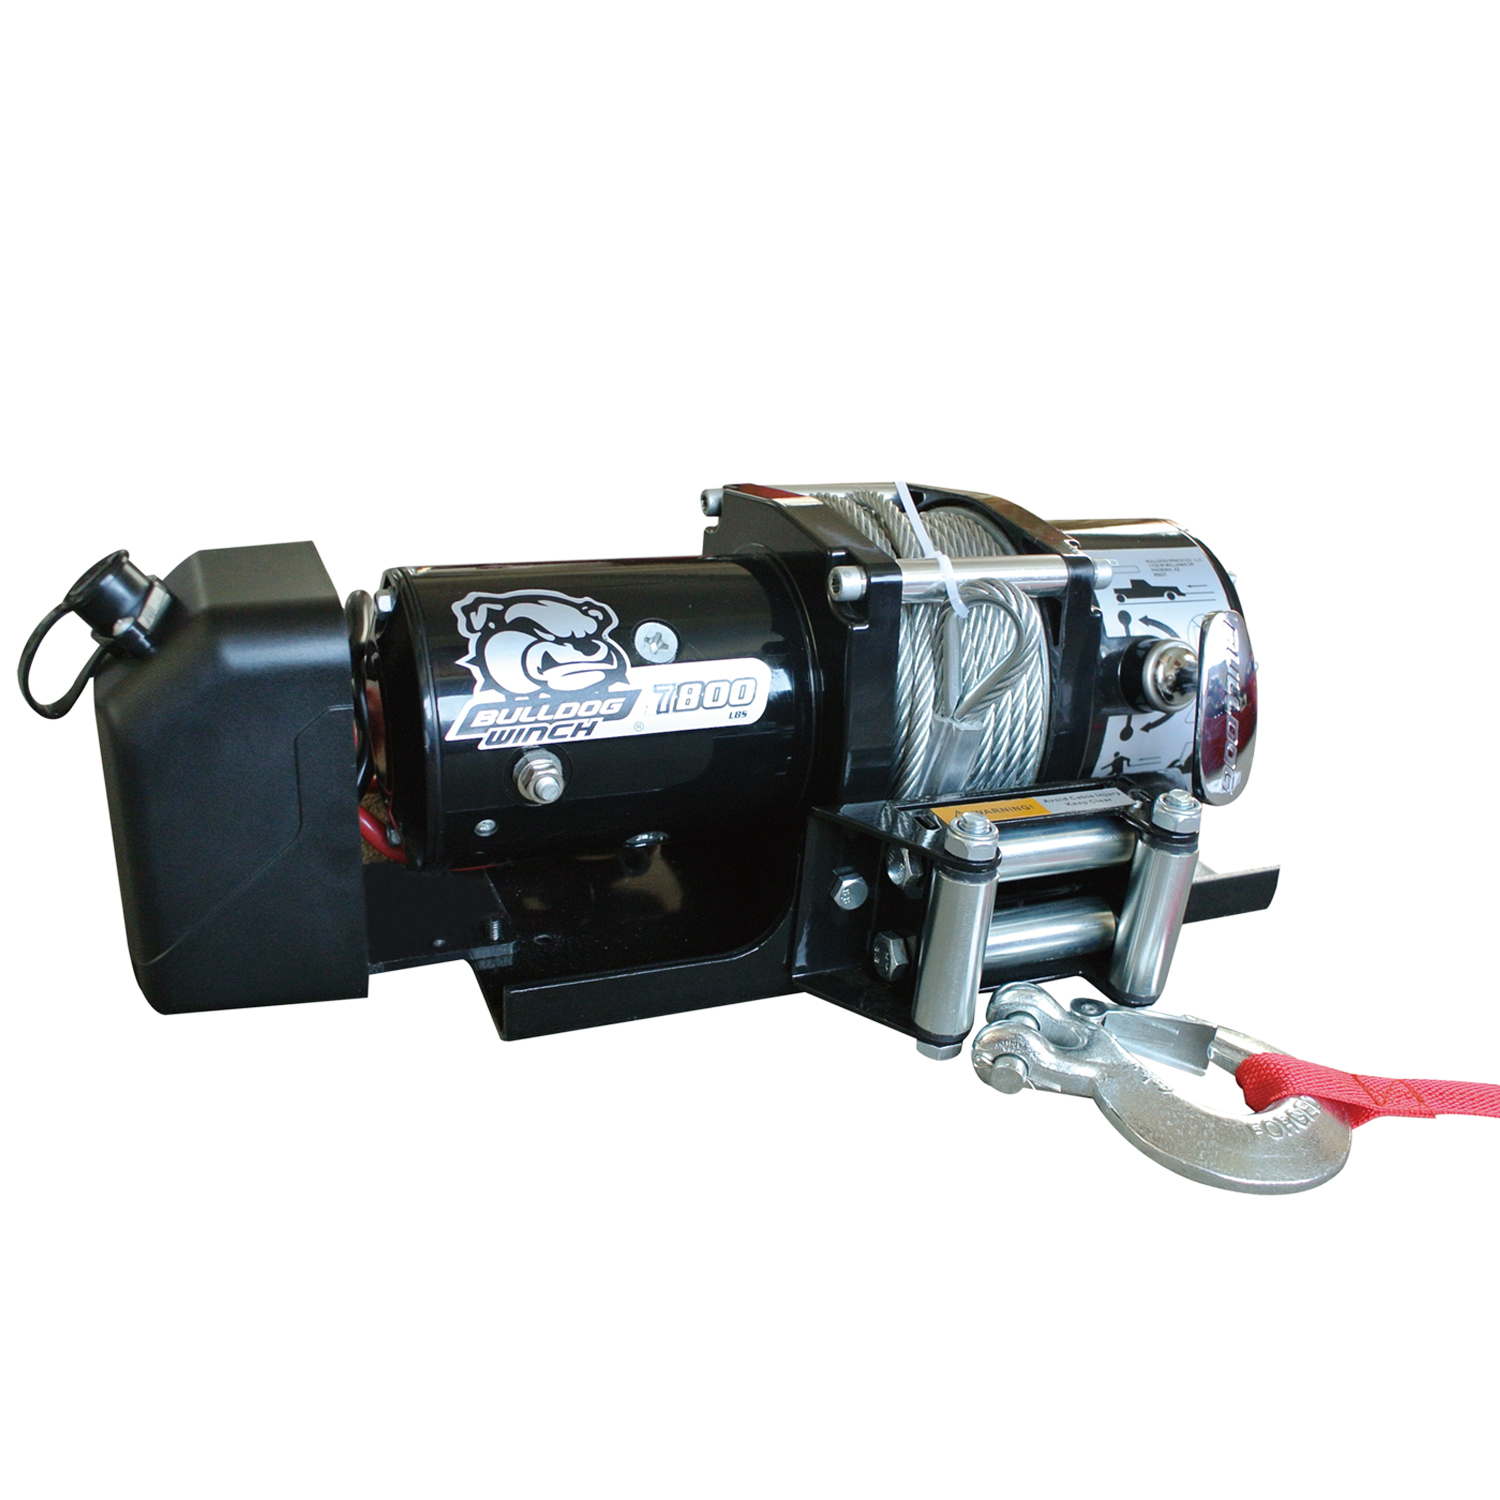 Bulldog Winch 7,800lb Trailer Winch w/ 47.5ft Wire Rope